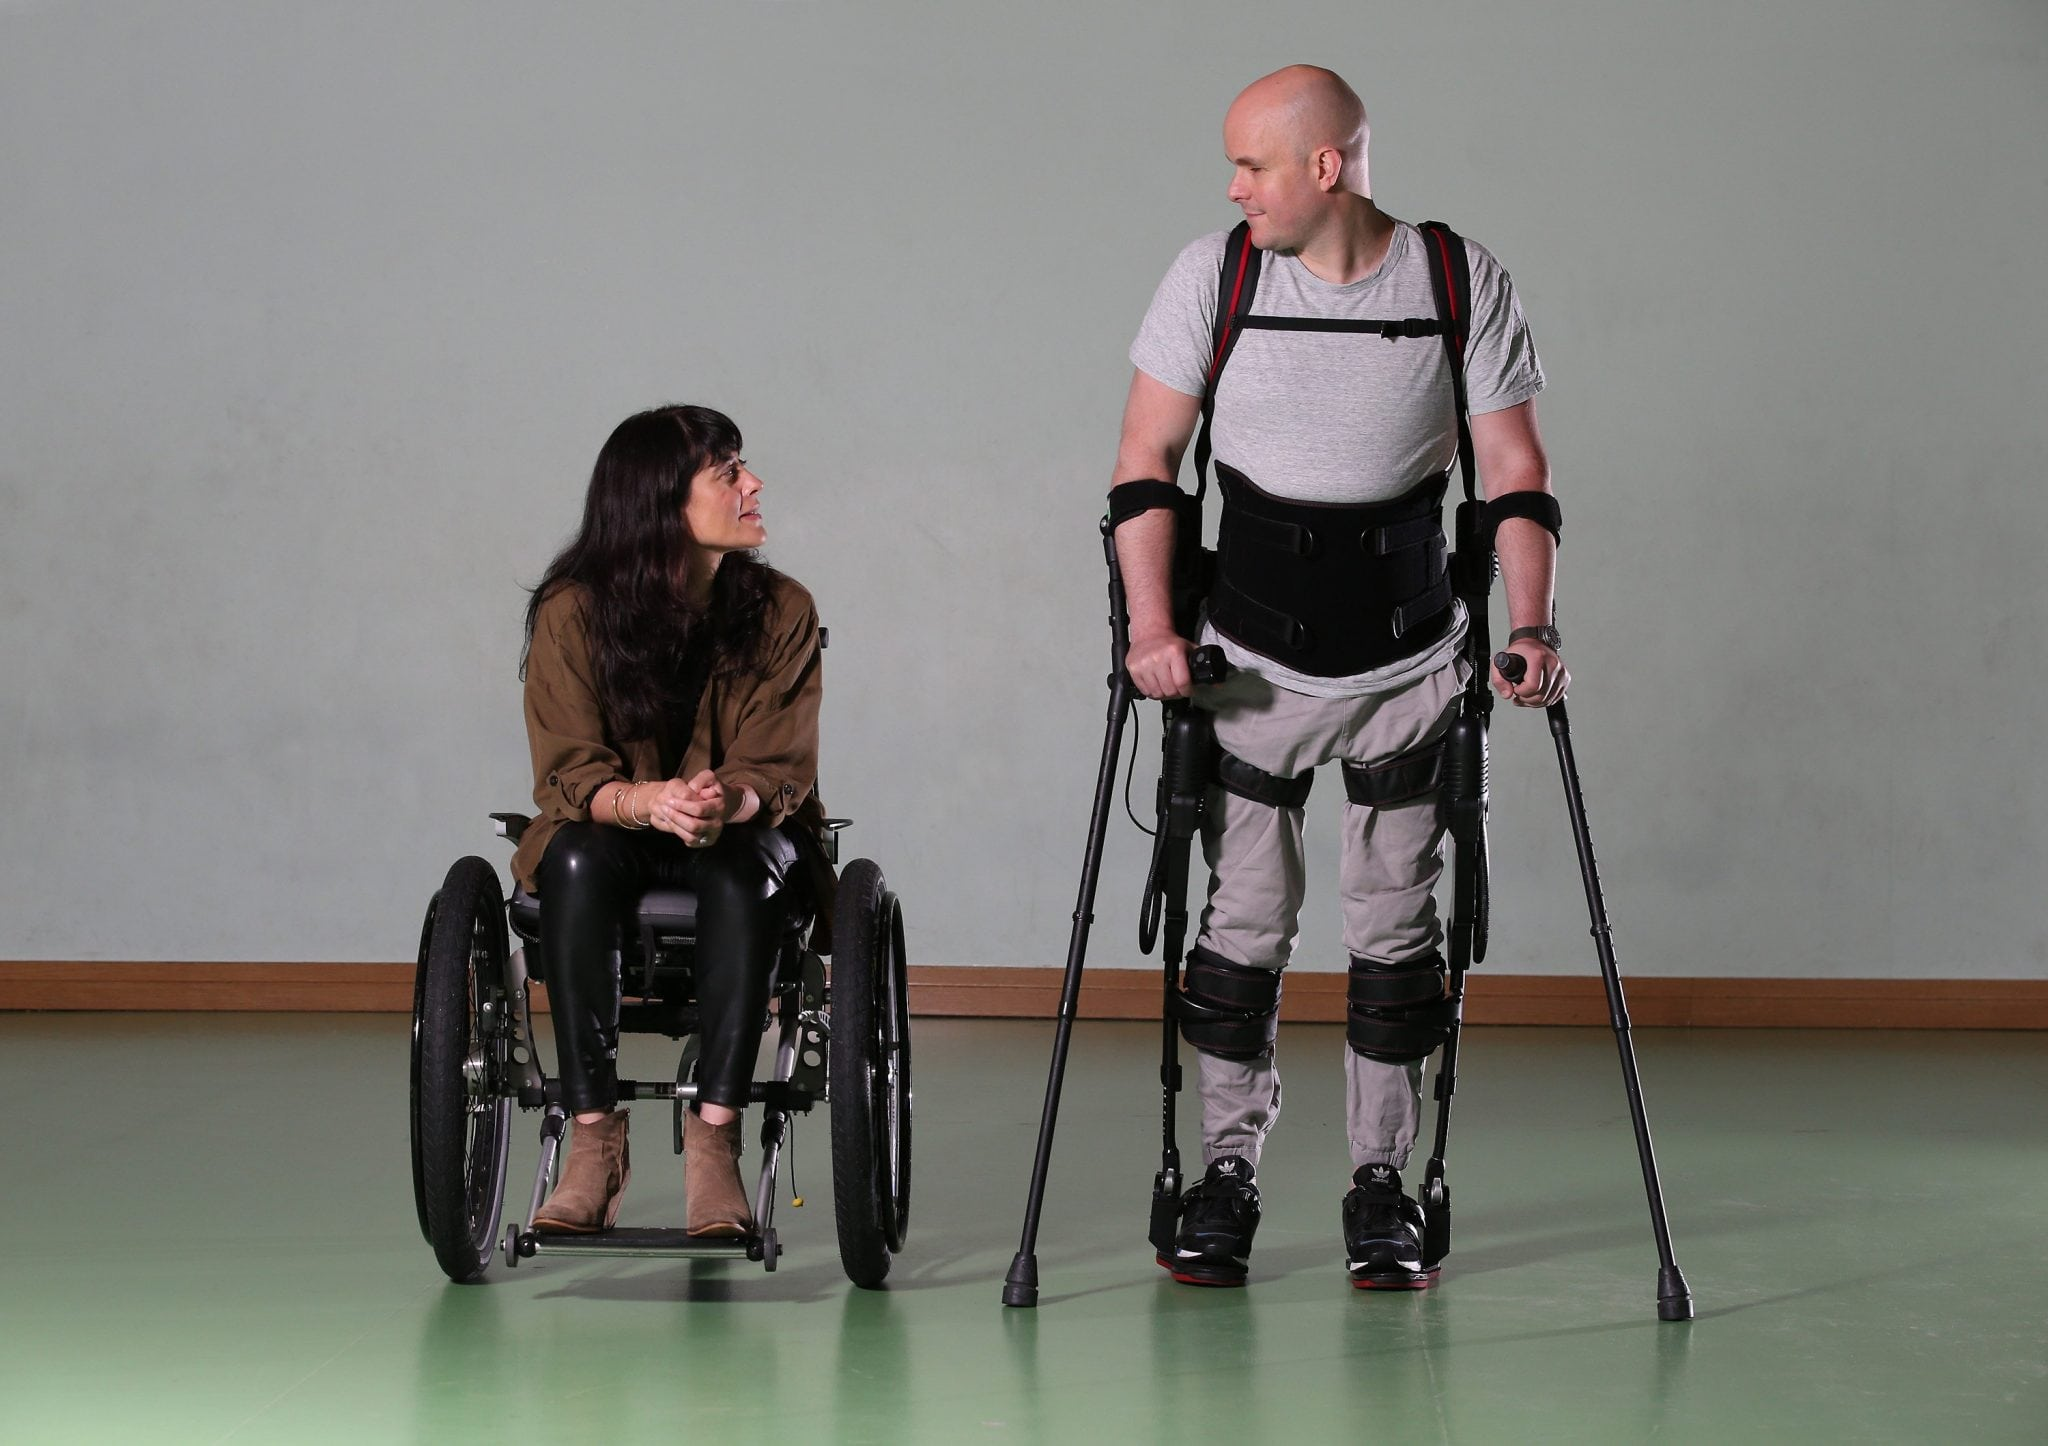 ALL IMAGES COPYRIGHT MARK POLLOCK TRUST. Mark Pollock wears the Ekso Bionics robotic exoskeleton as Simone George sits his his wheelchair at Trinity College in Dublin 7th November 2015. Photographed by Peter Macdiarmid for the Mark Pollock Trust.